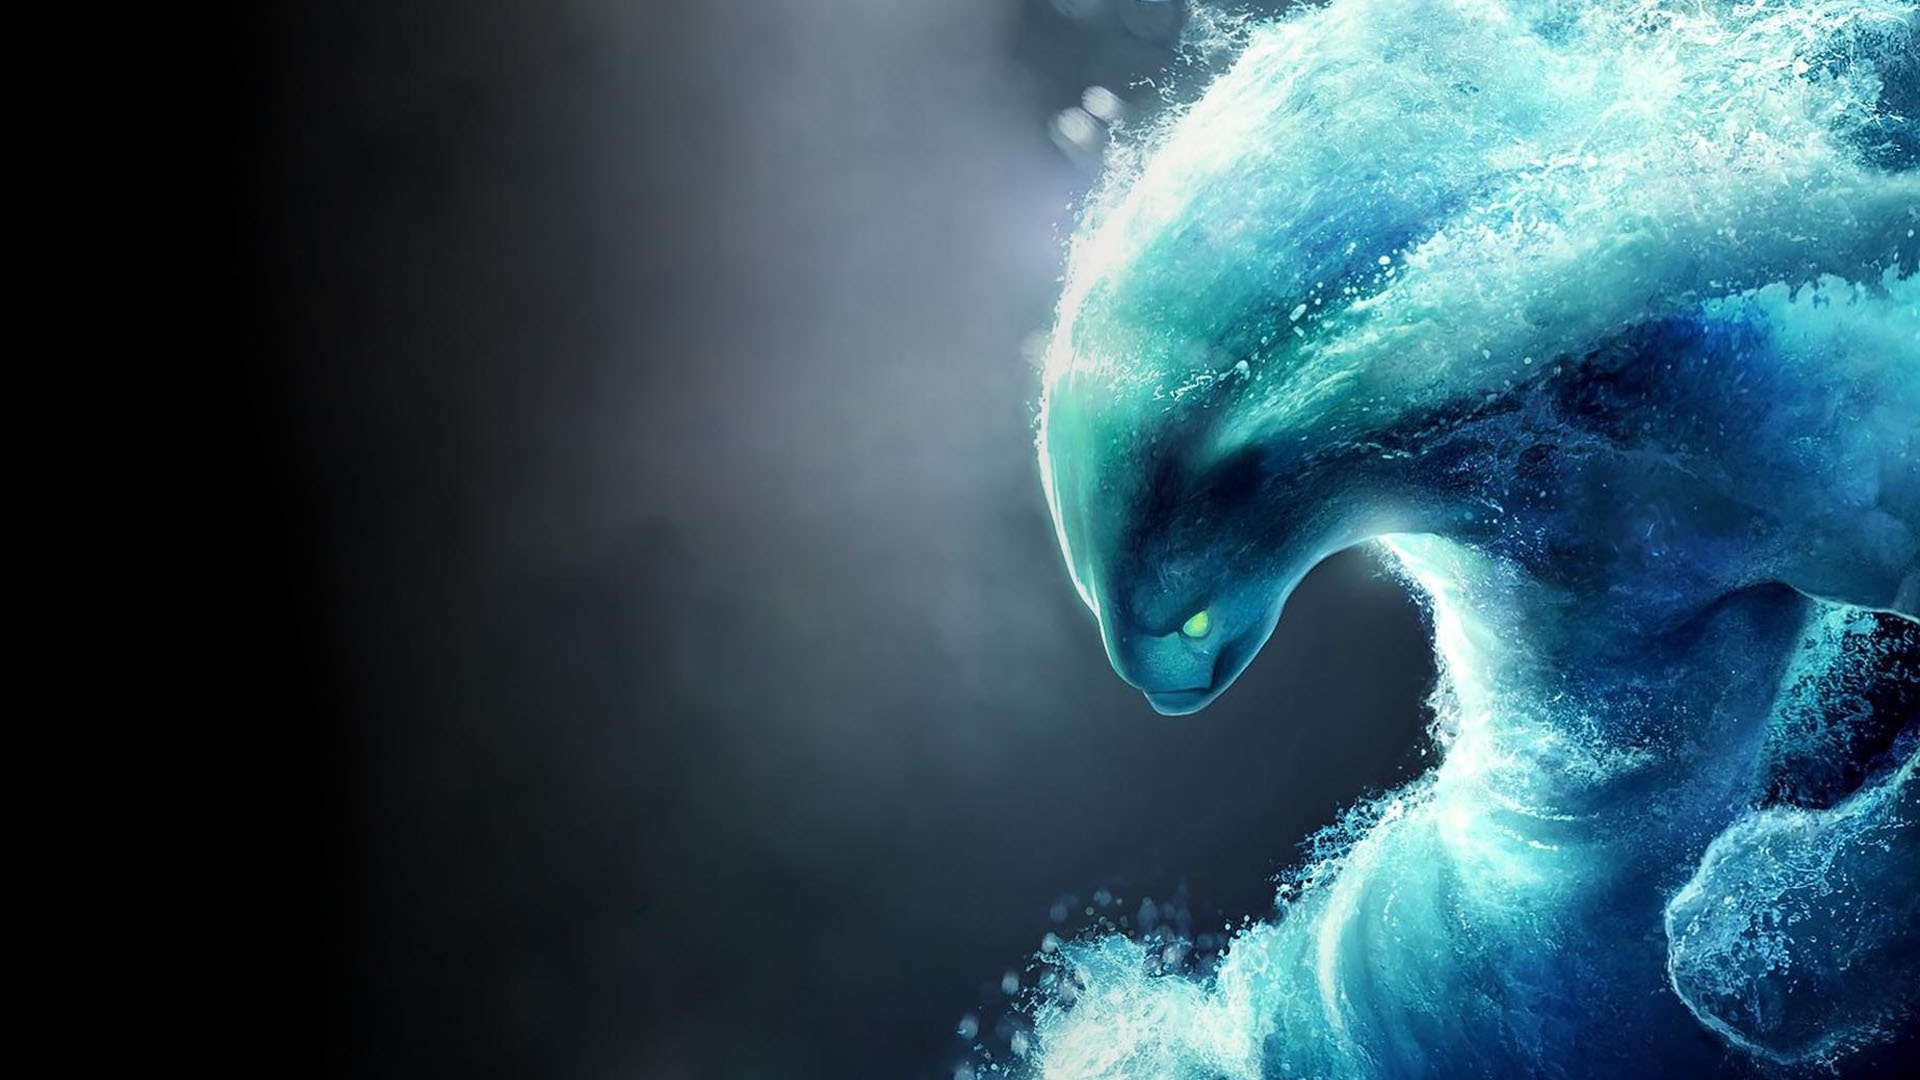 Dota 2 Game Wallpapers